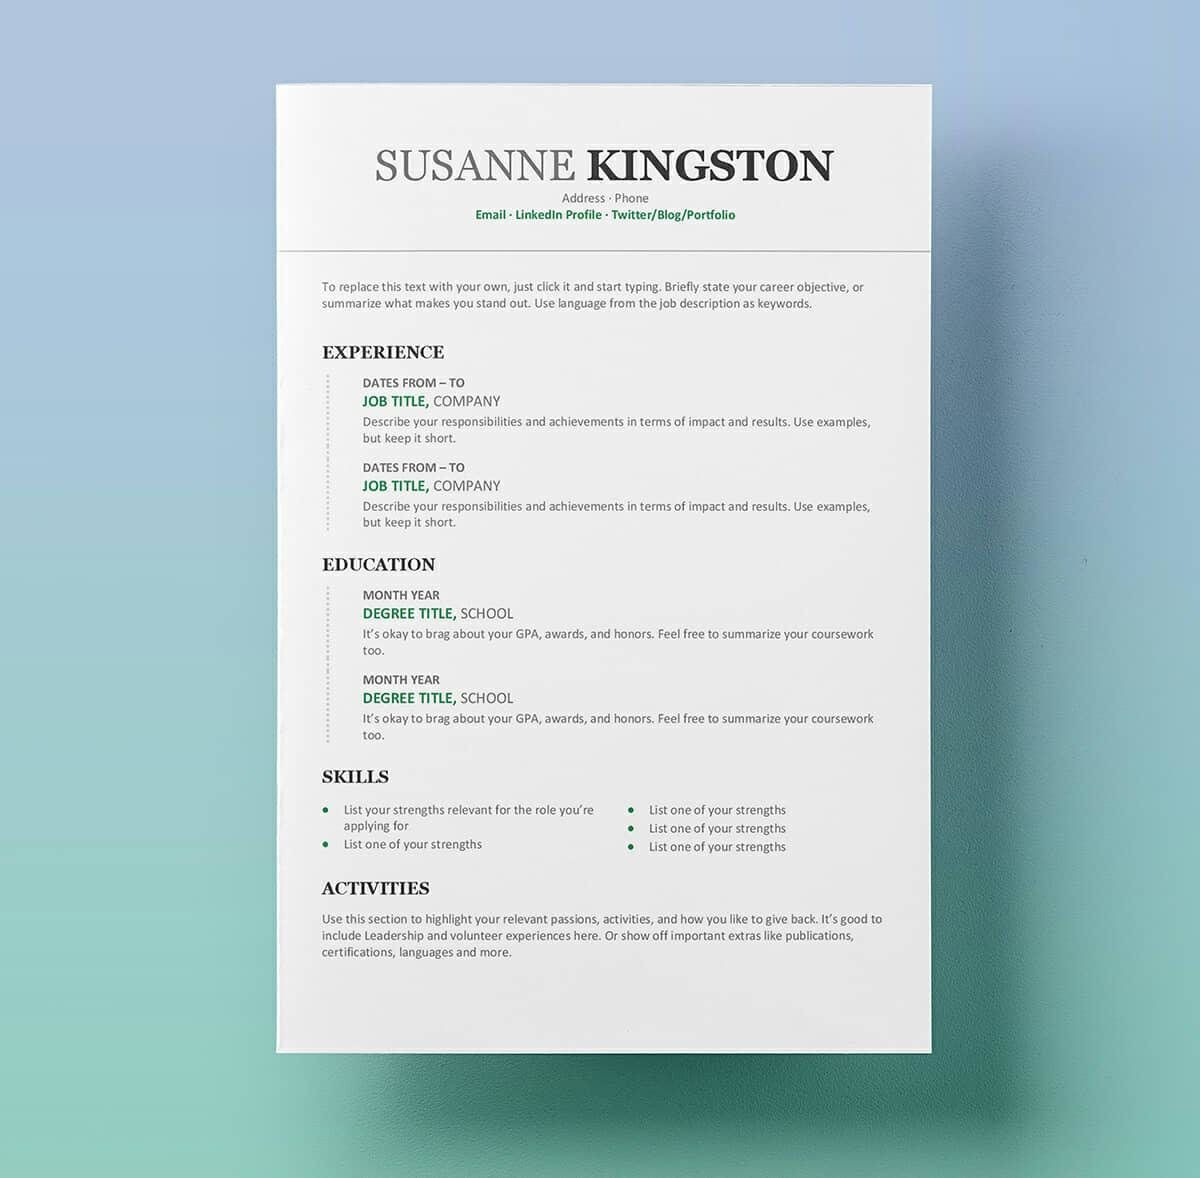 007 Excellent Resume Template Free Word Design  Download Document 2020 For FresherFull